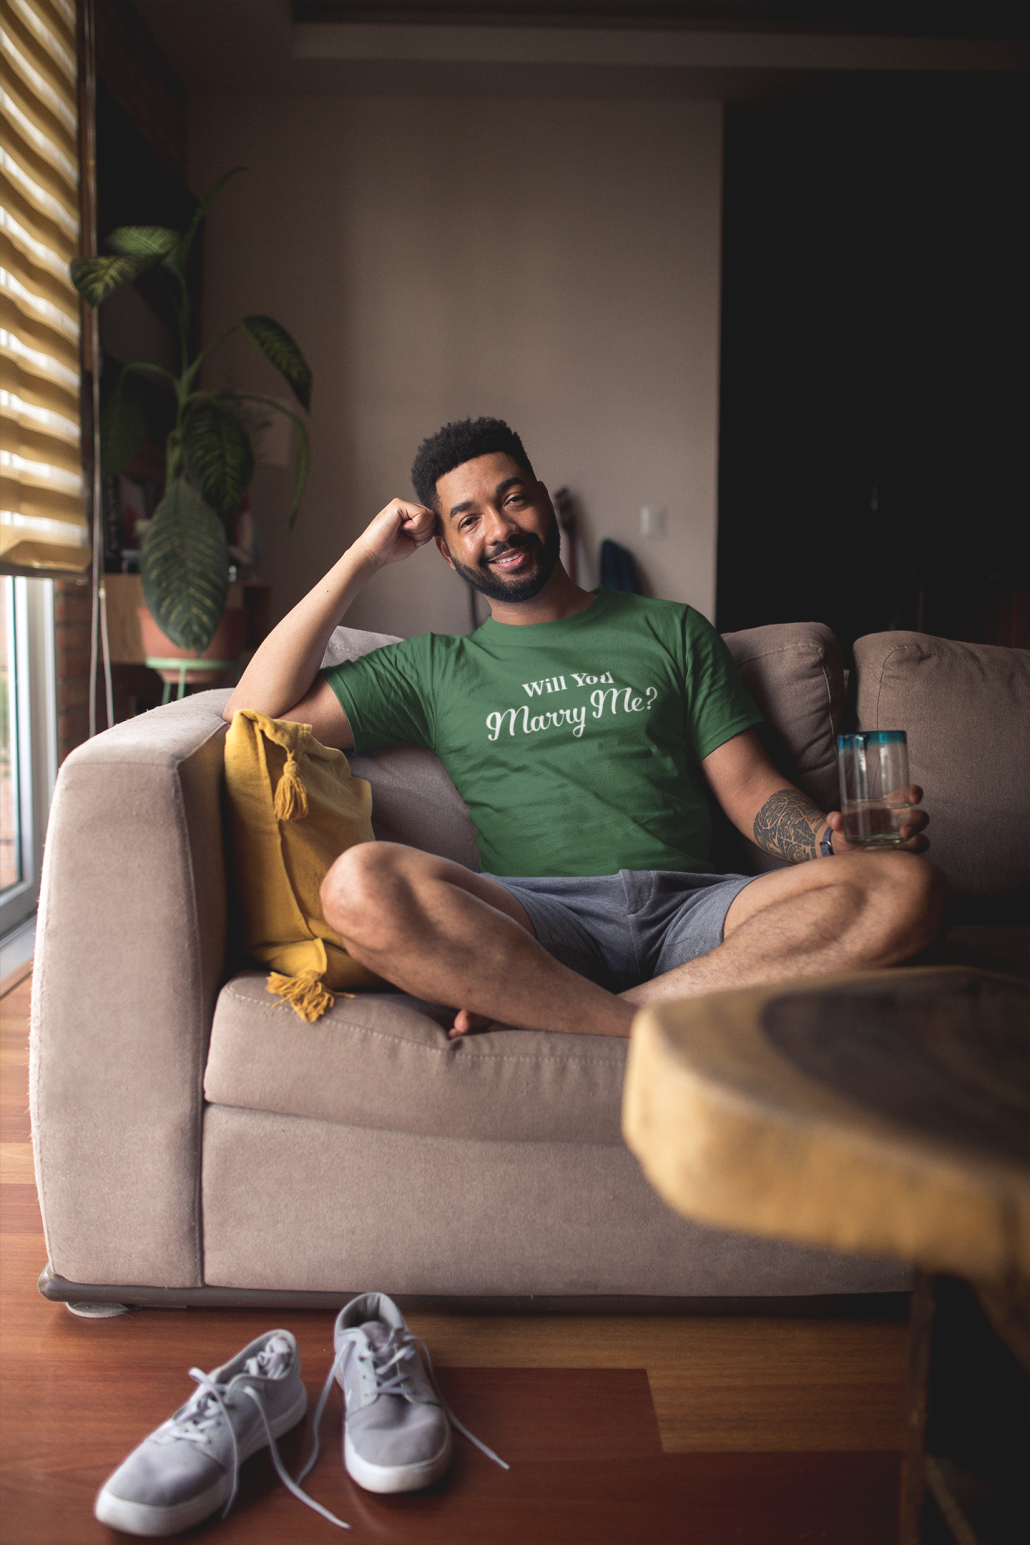 man wearing personalized t-shirt and sitting on a couch